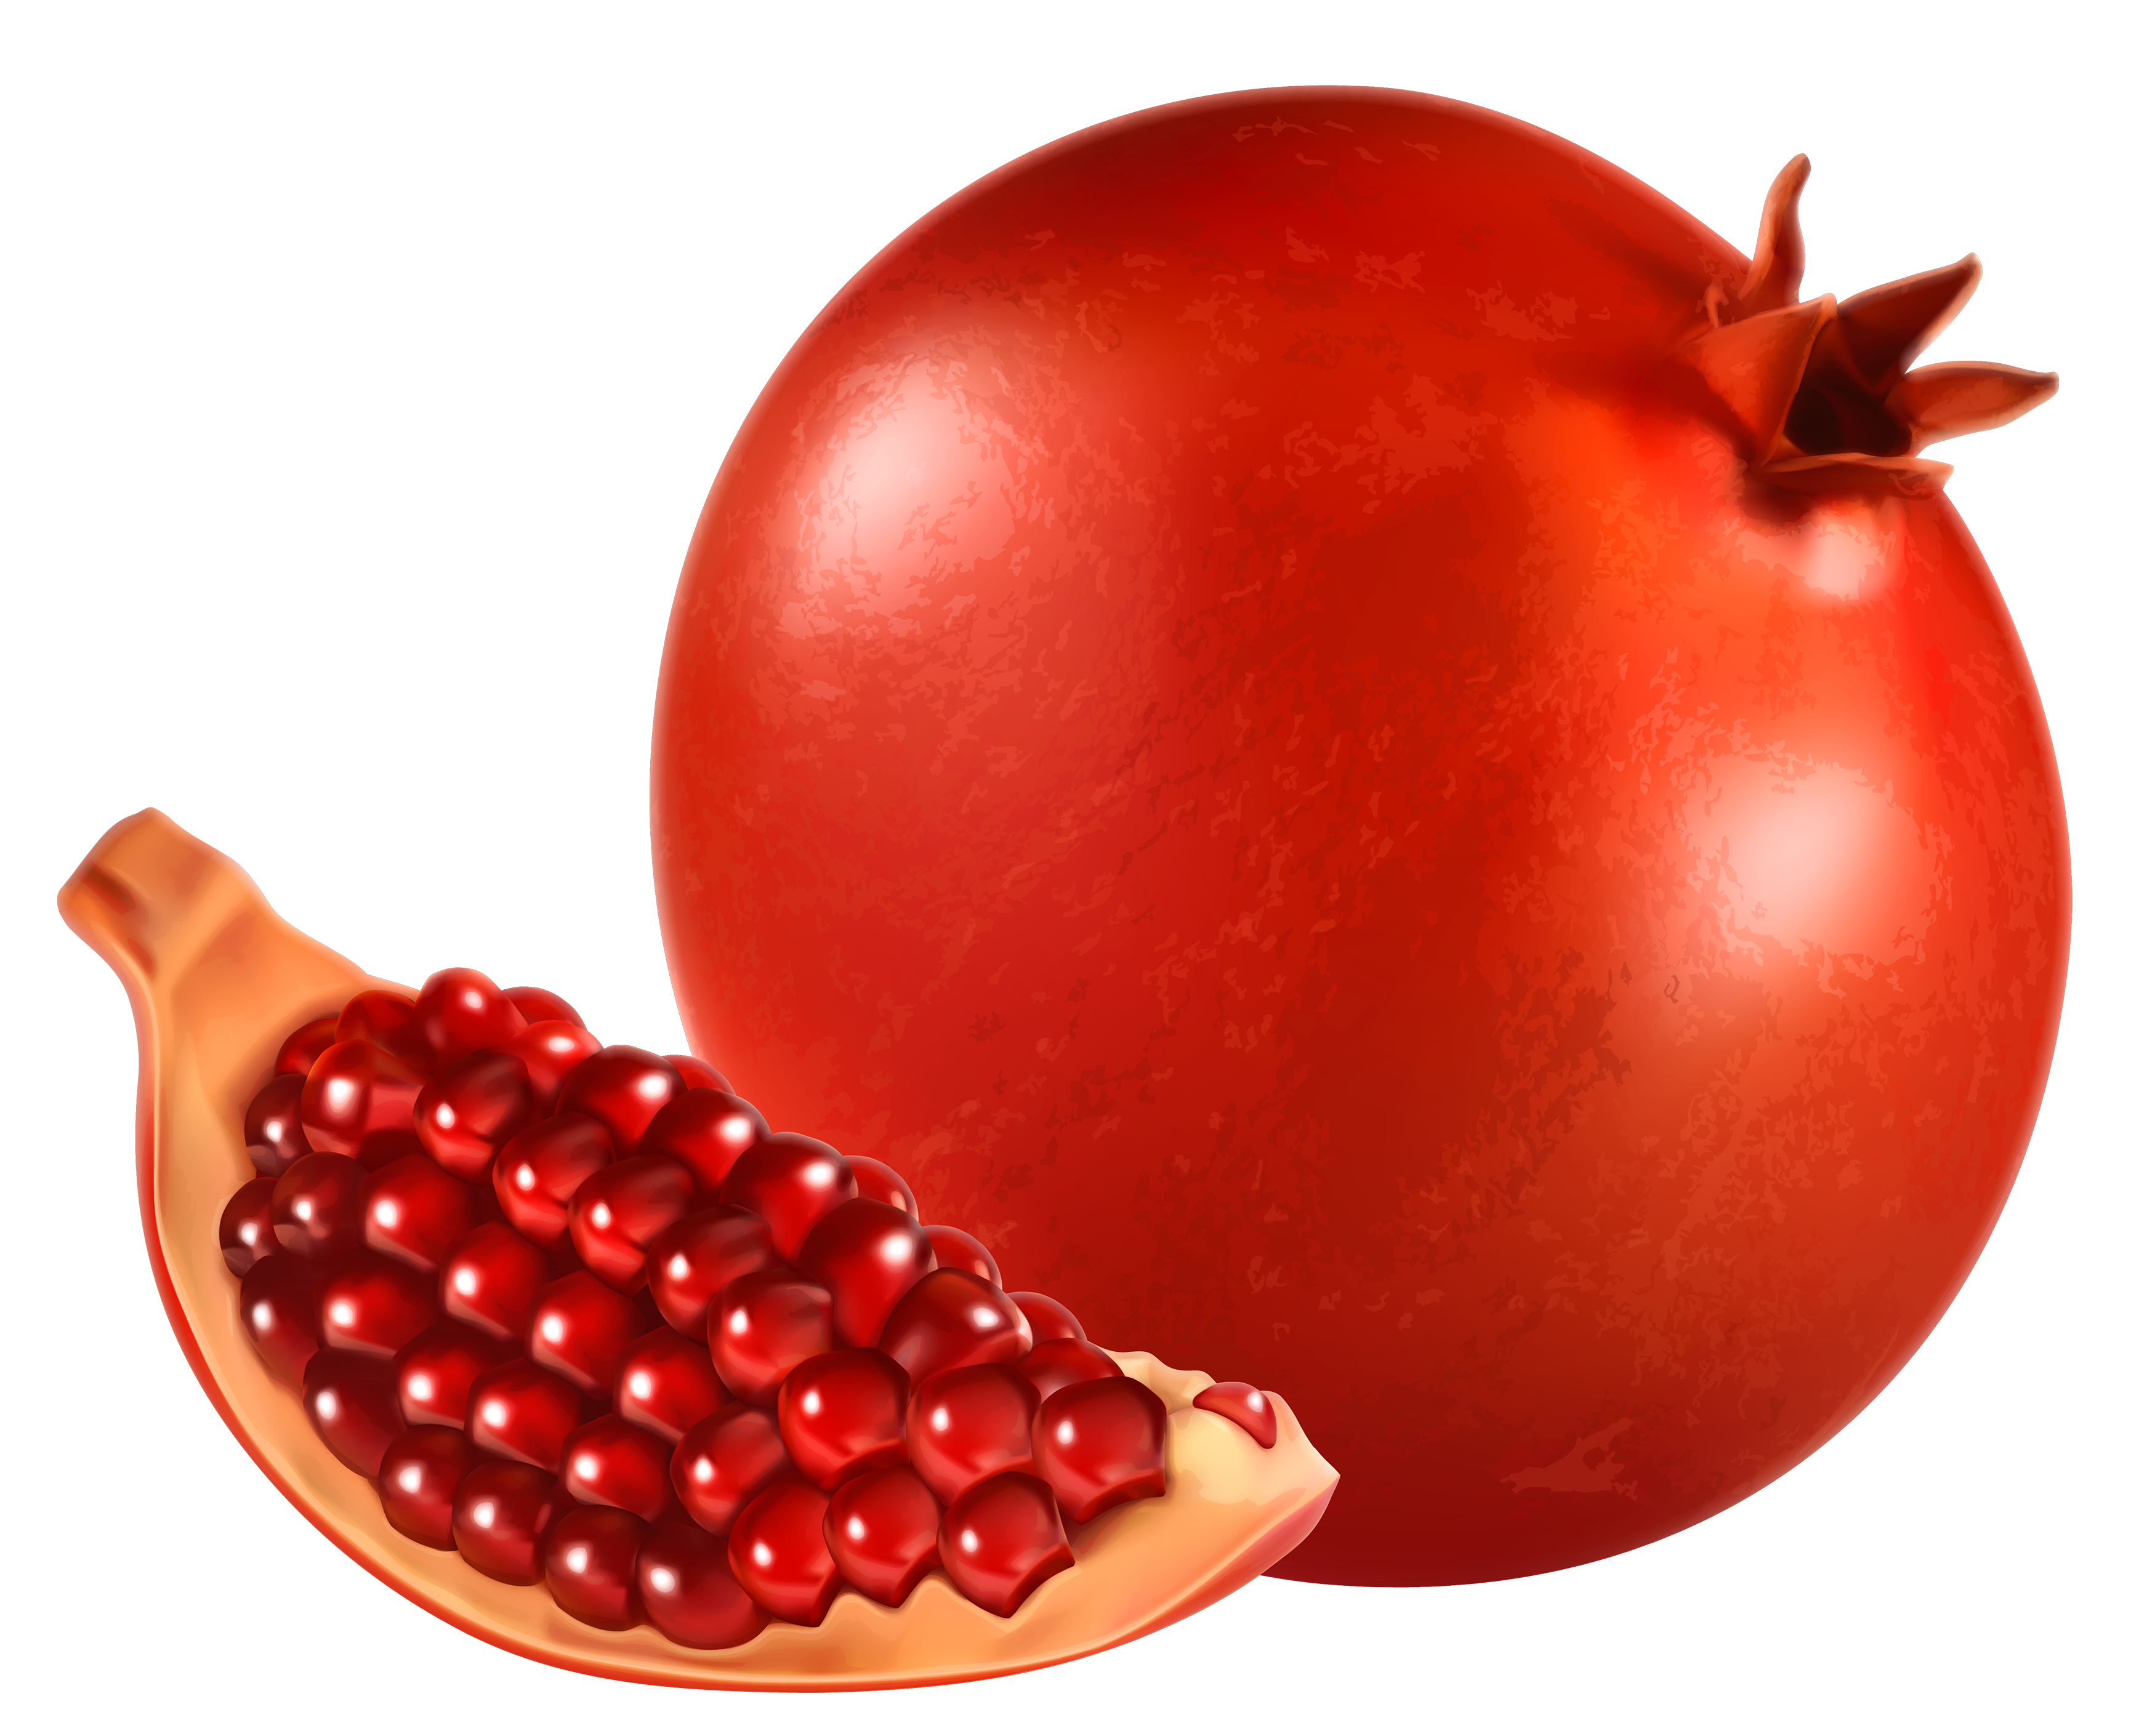 pomegranate open clipart cliparts download 24577